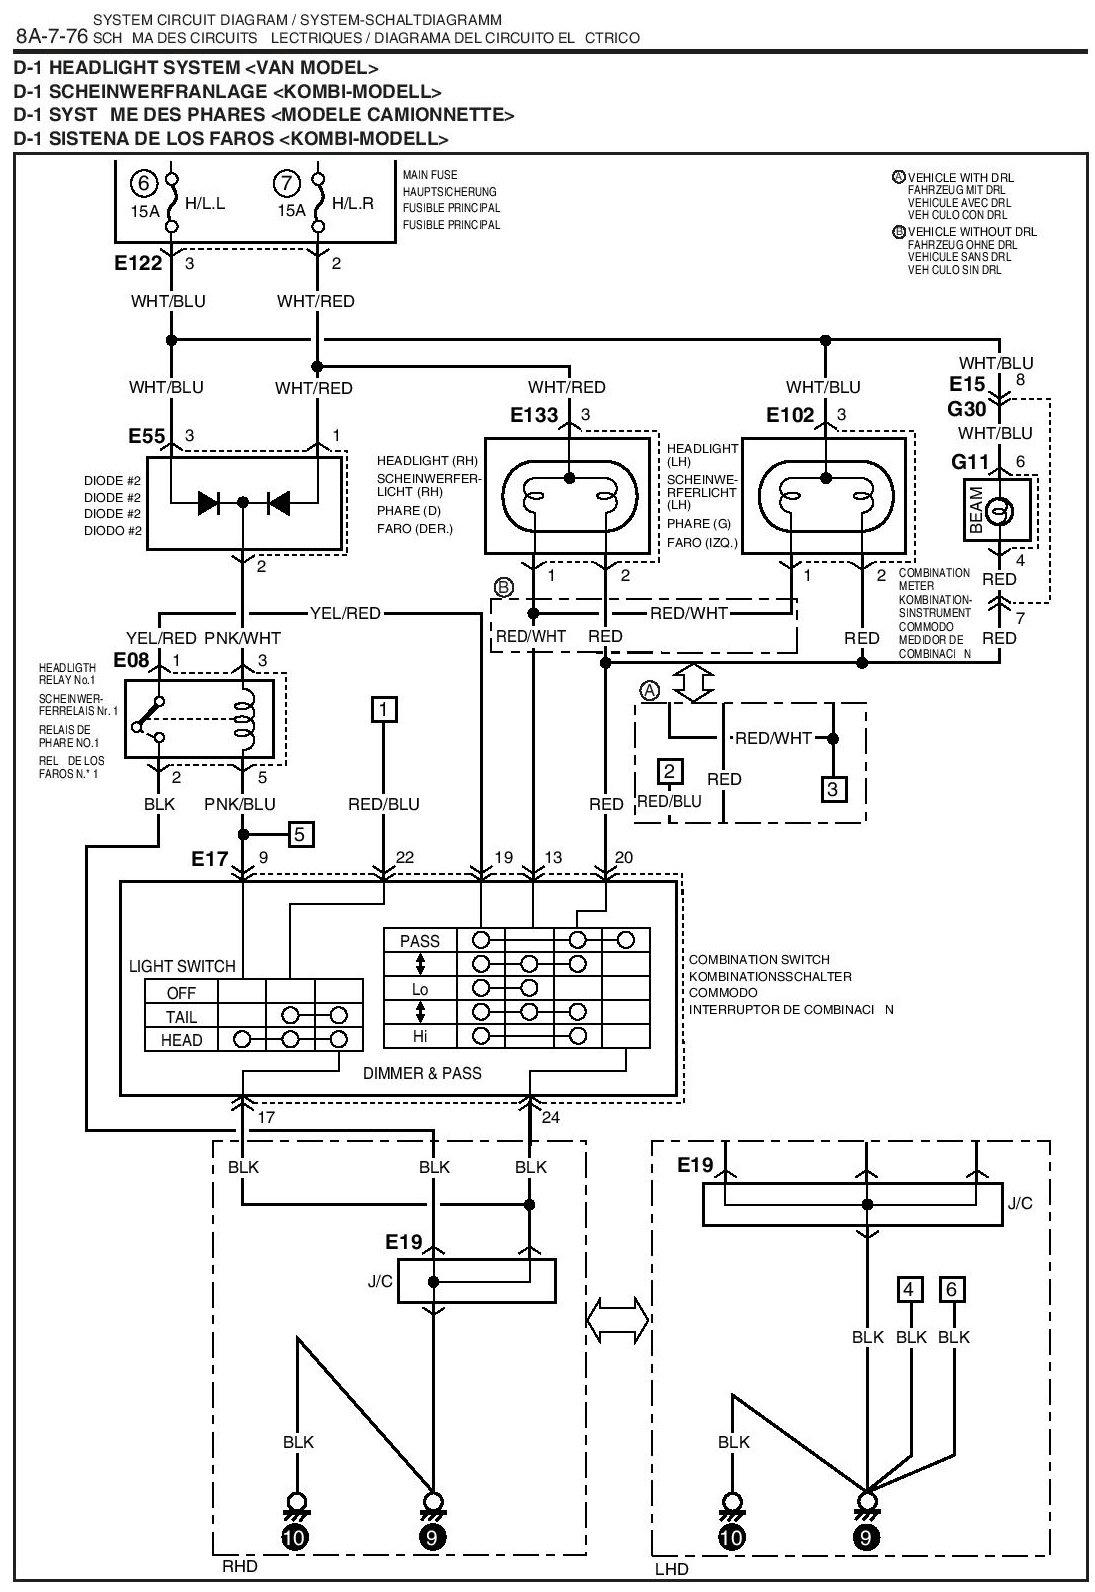 hight resolution of headlight wiring diagram suzuki vitara data wiring diagram 2000 suzuki grand vitara wiring  [ 1095 x 1592 Pixel ]